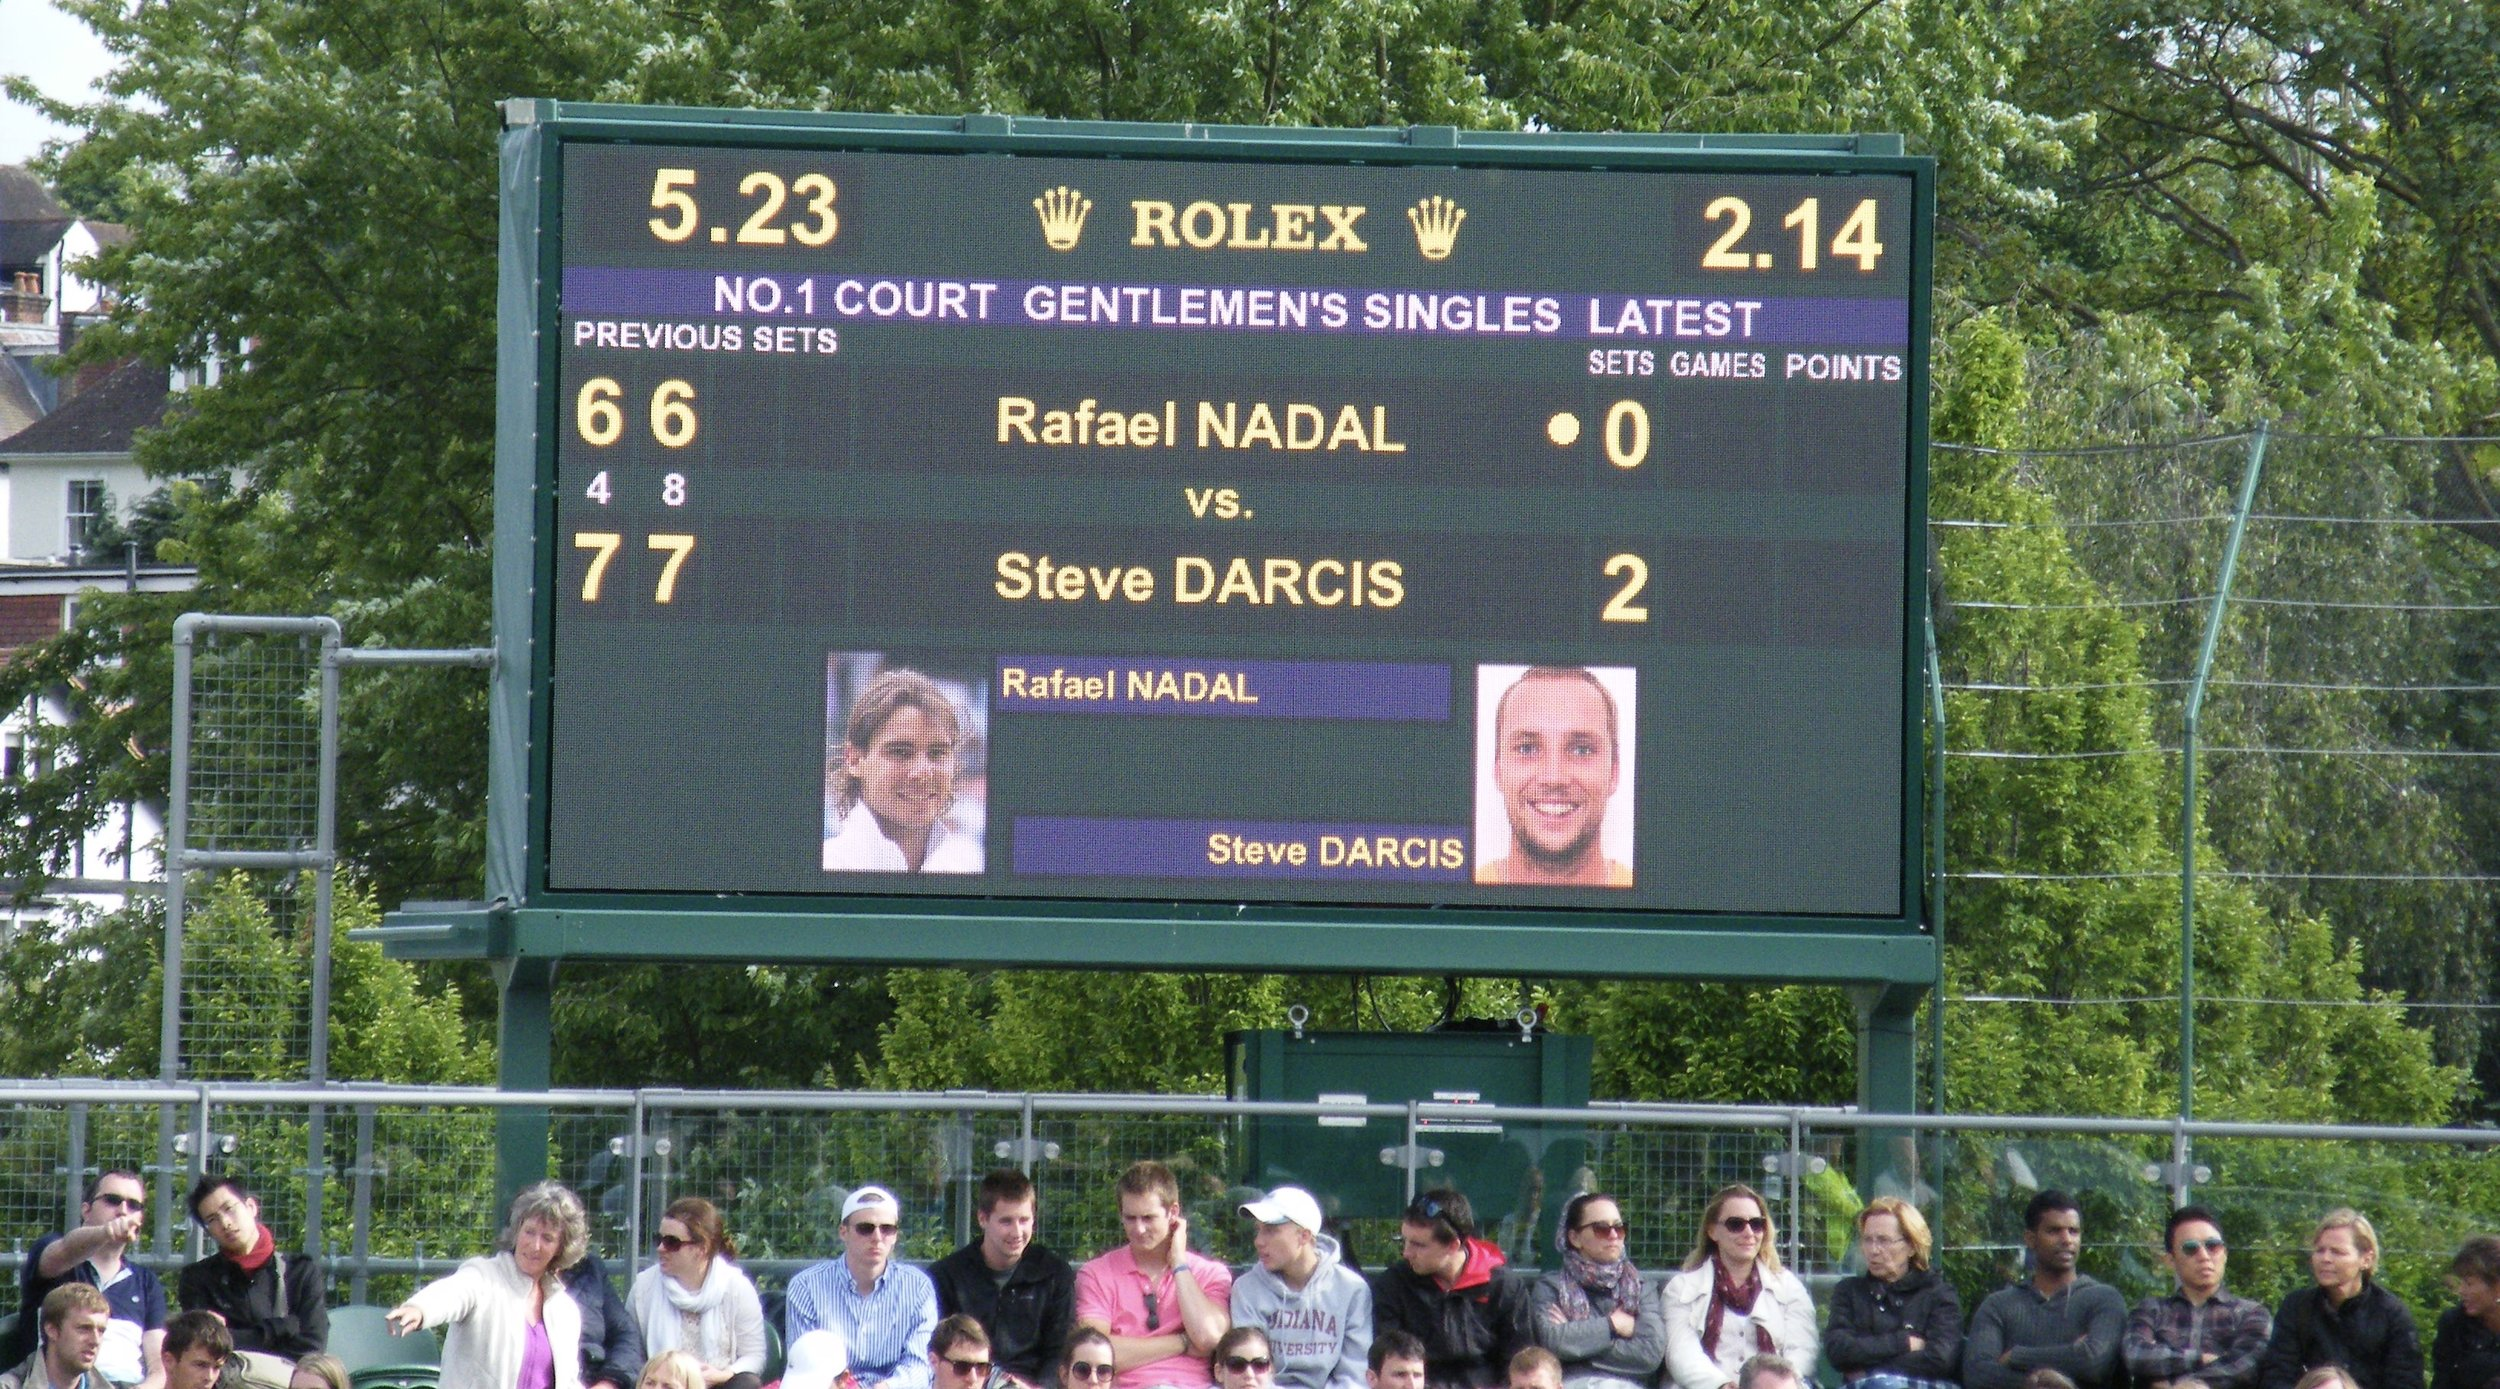 17:23 - The scoreboard from No 1 Court continued to make us wonder when Nadal would grind his way out of trouble.